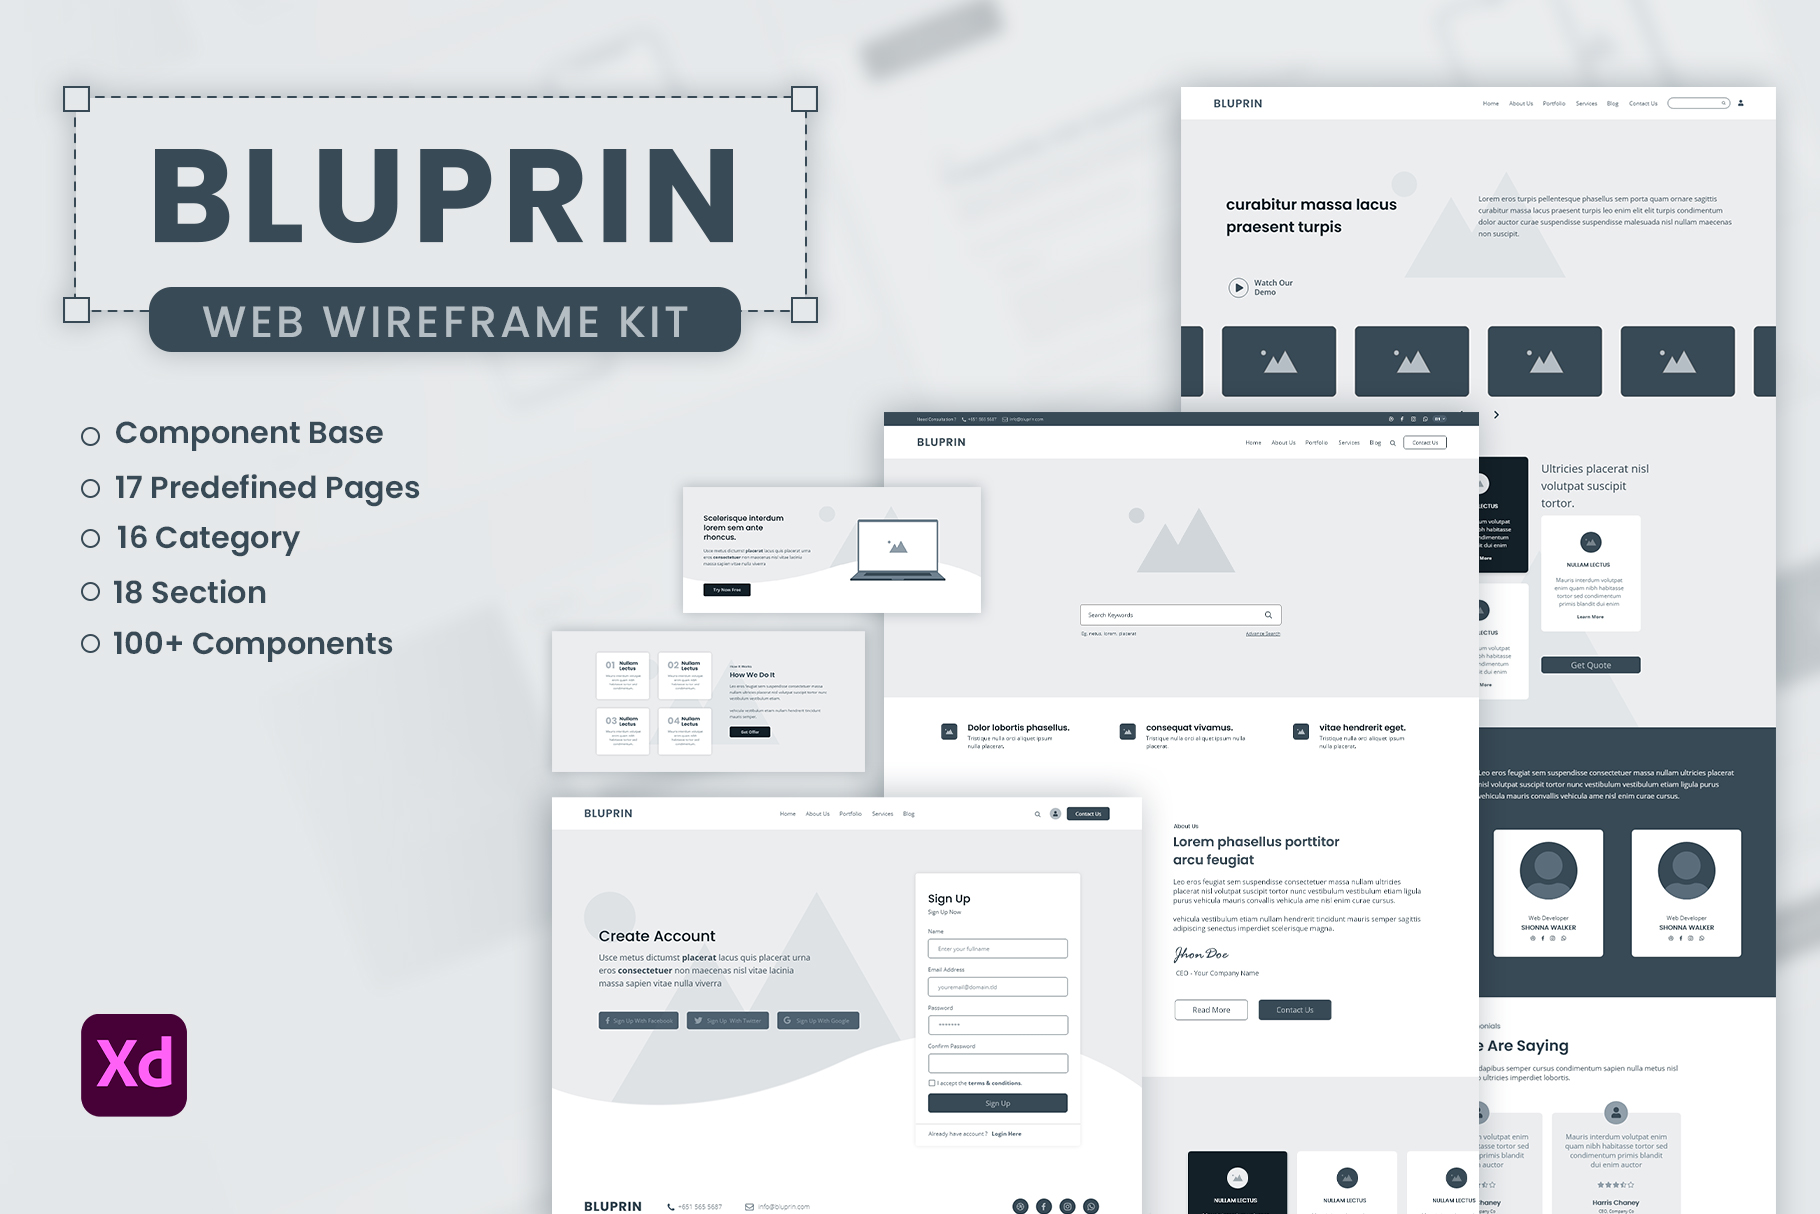 Bluprin – Adobe XD Wireframe Kit For Web